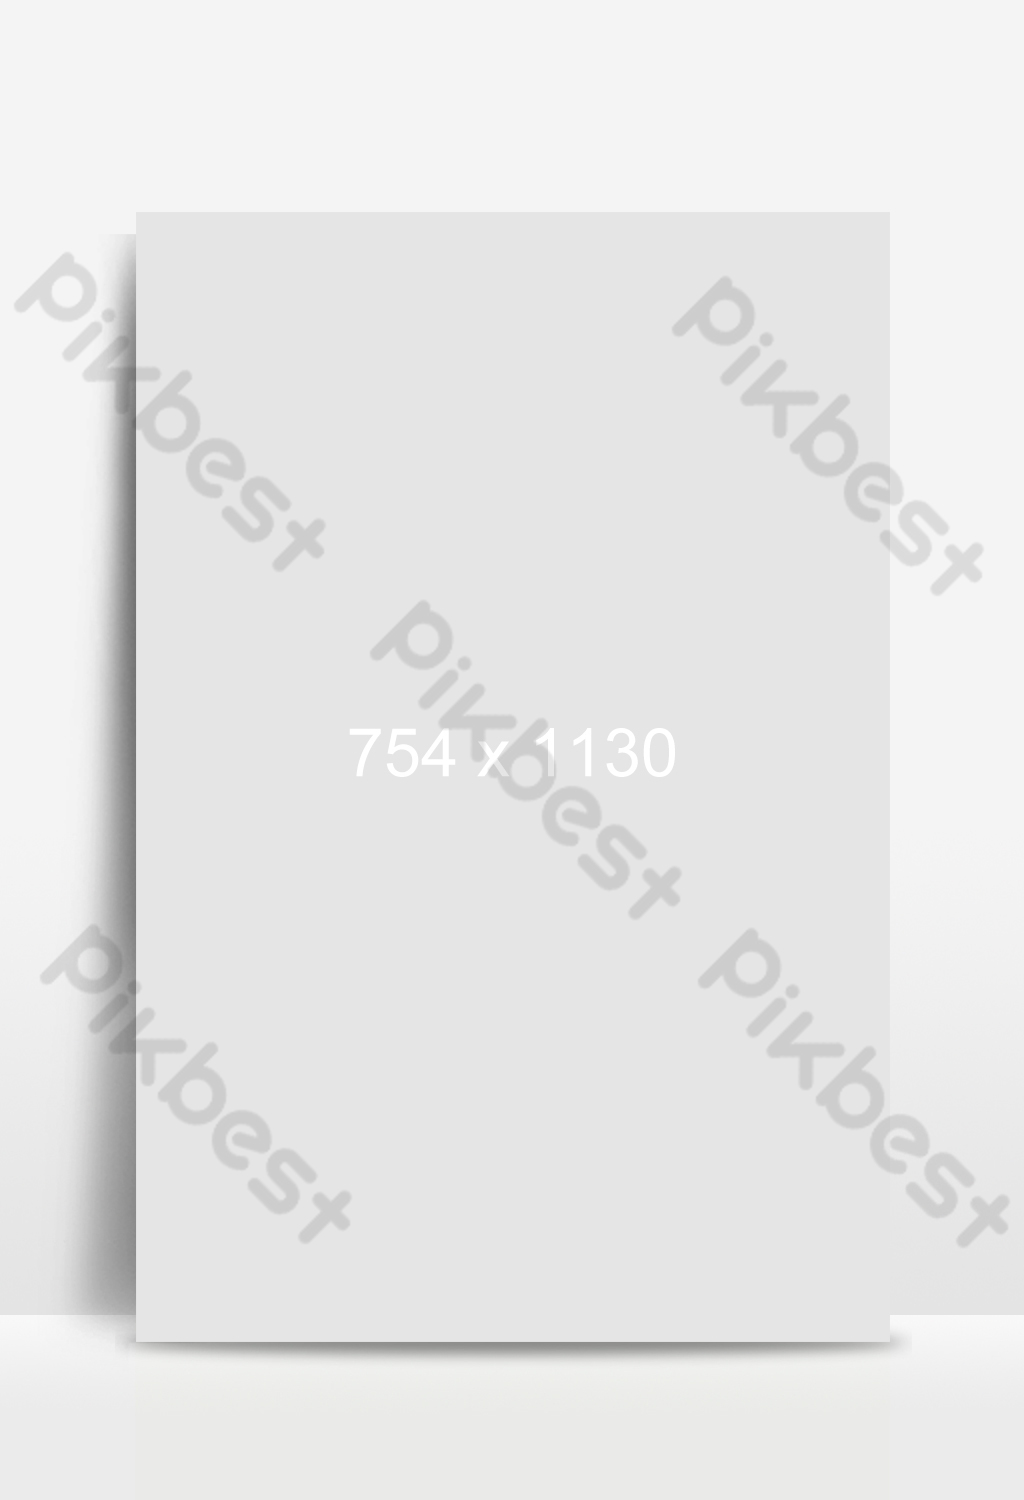 Simple Love Pink And Blue Color Background Backgrounds Psd Free Download Pikbest,Mehndi Designs For Beginners For Kids